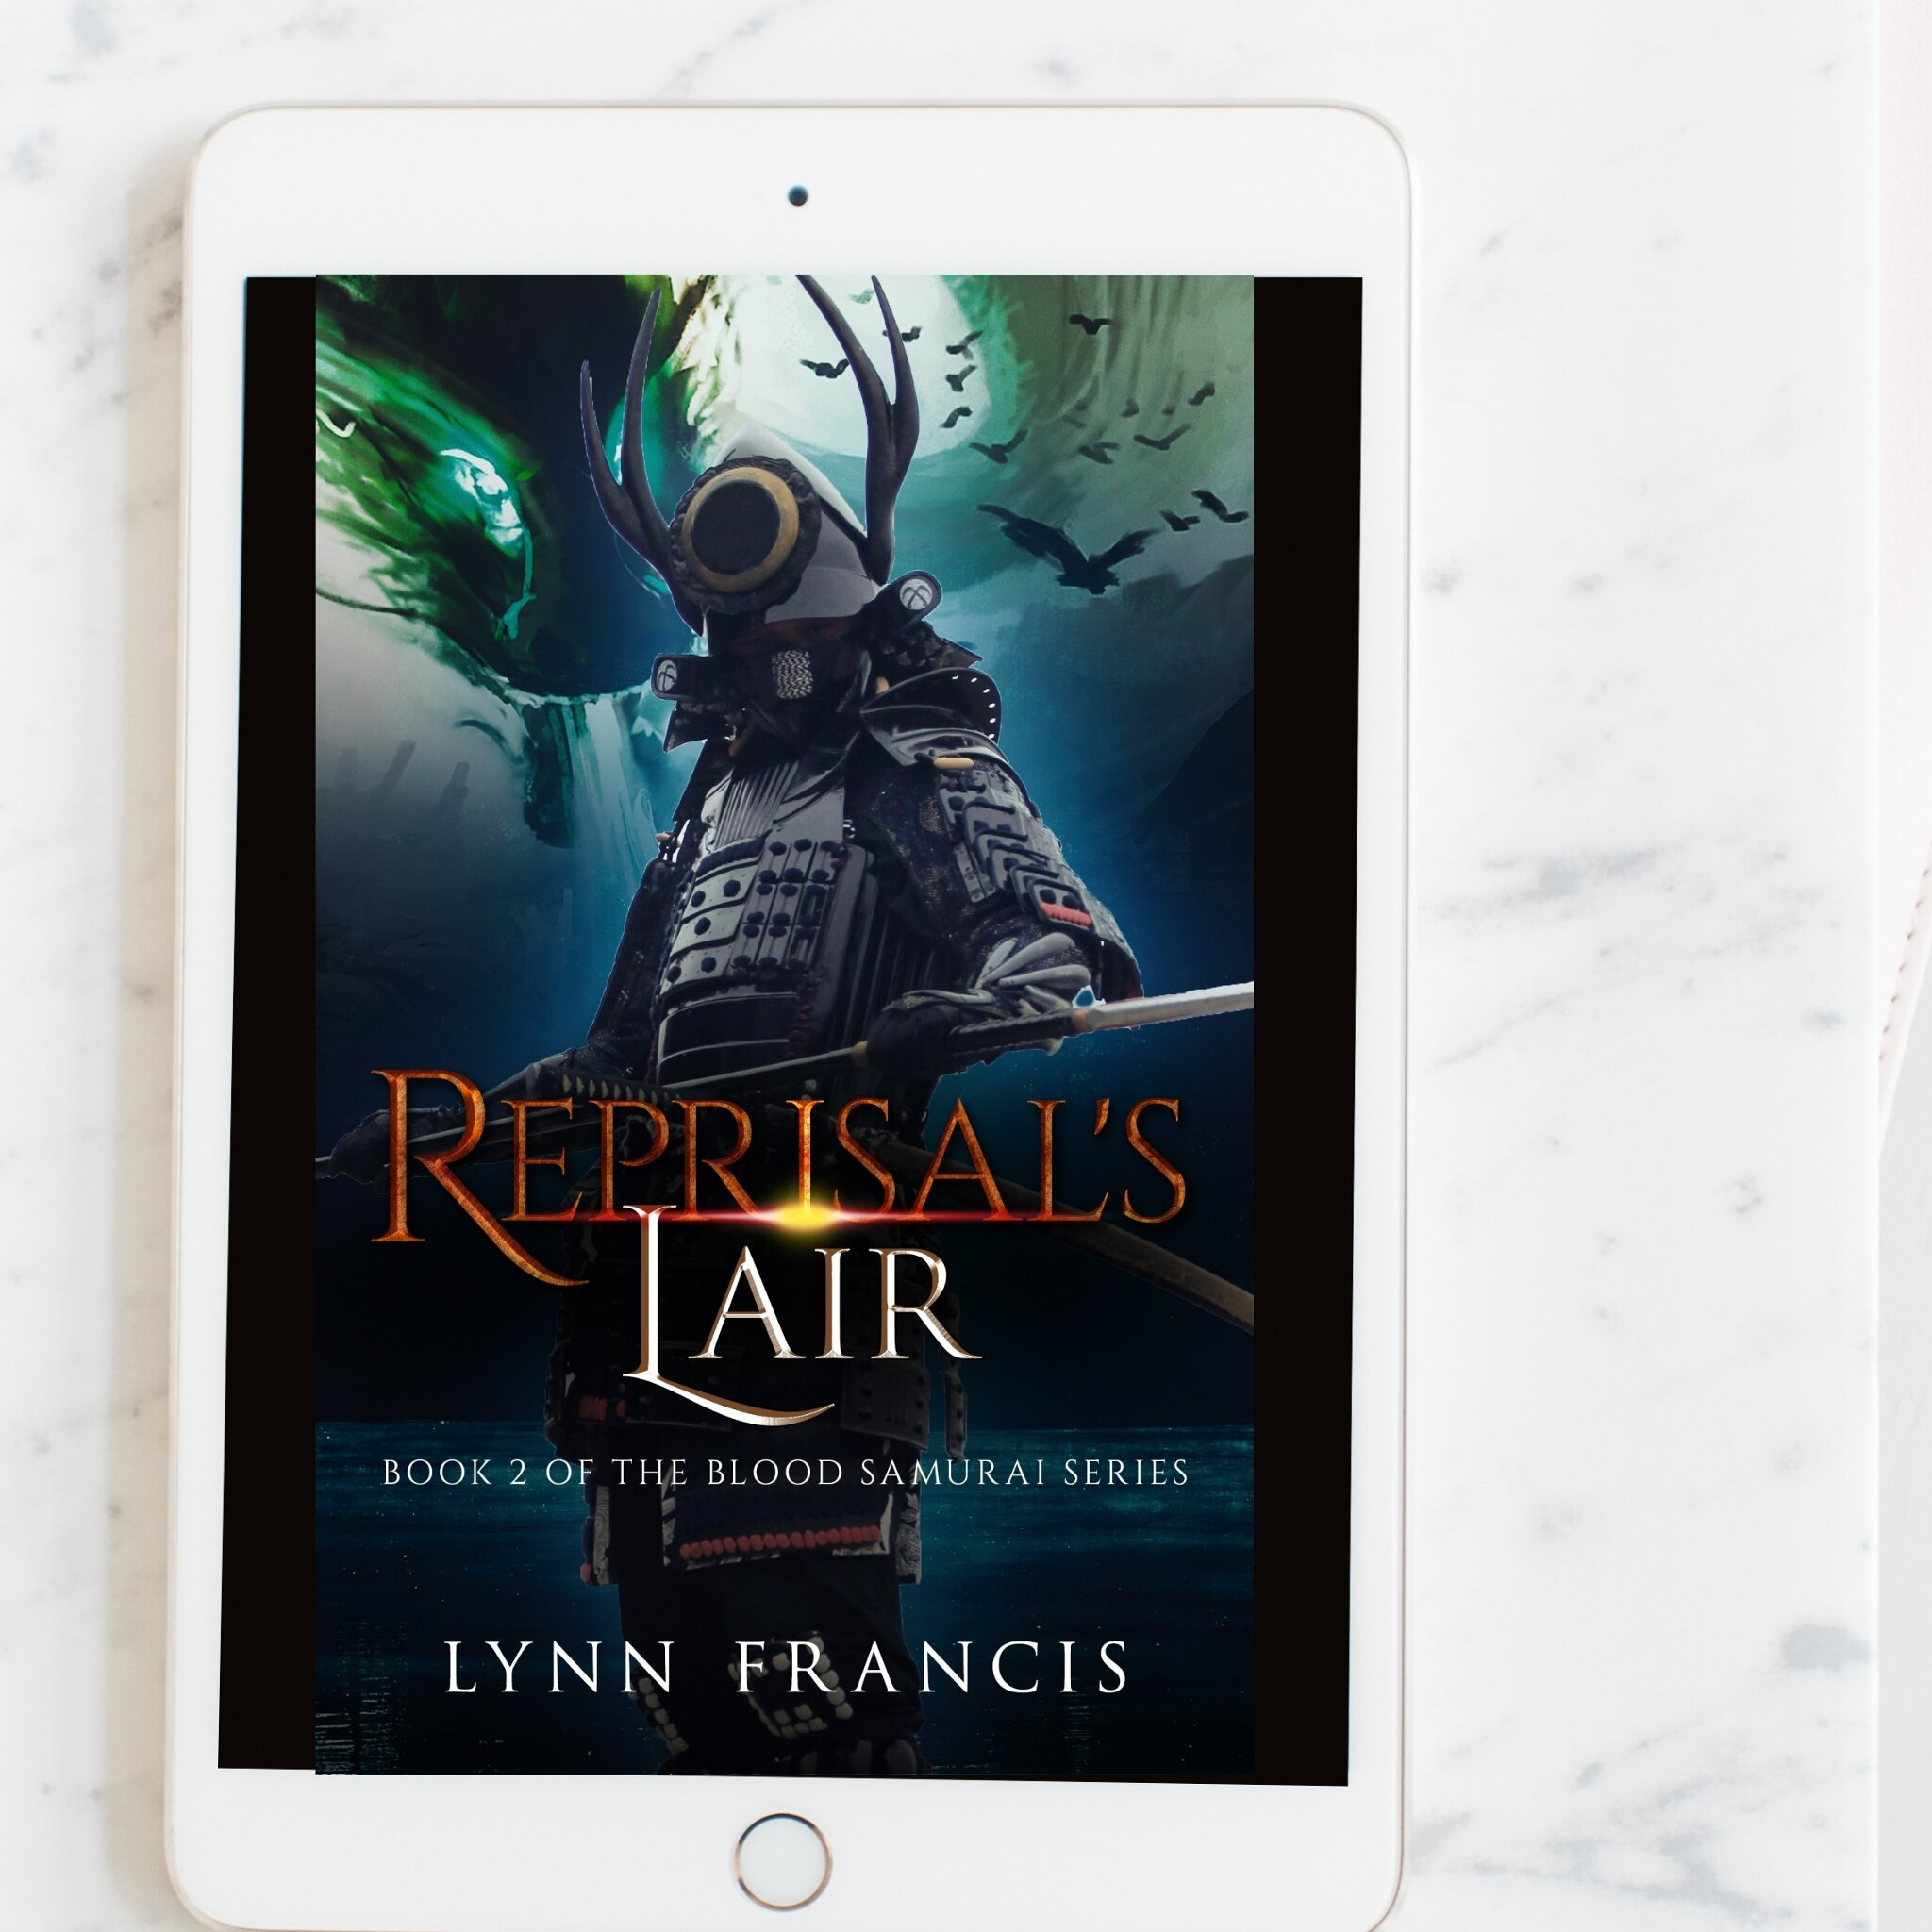 Reprisal's lair book 2 of the blood samurai fantasy